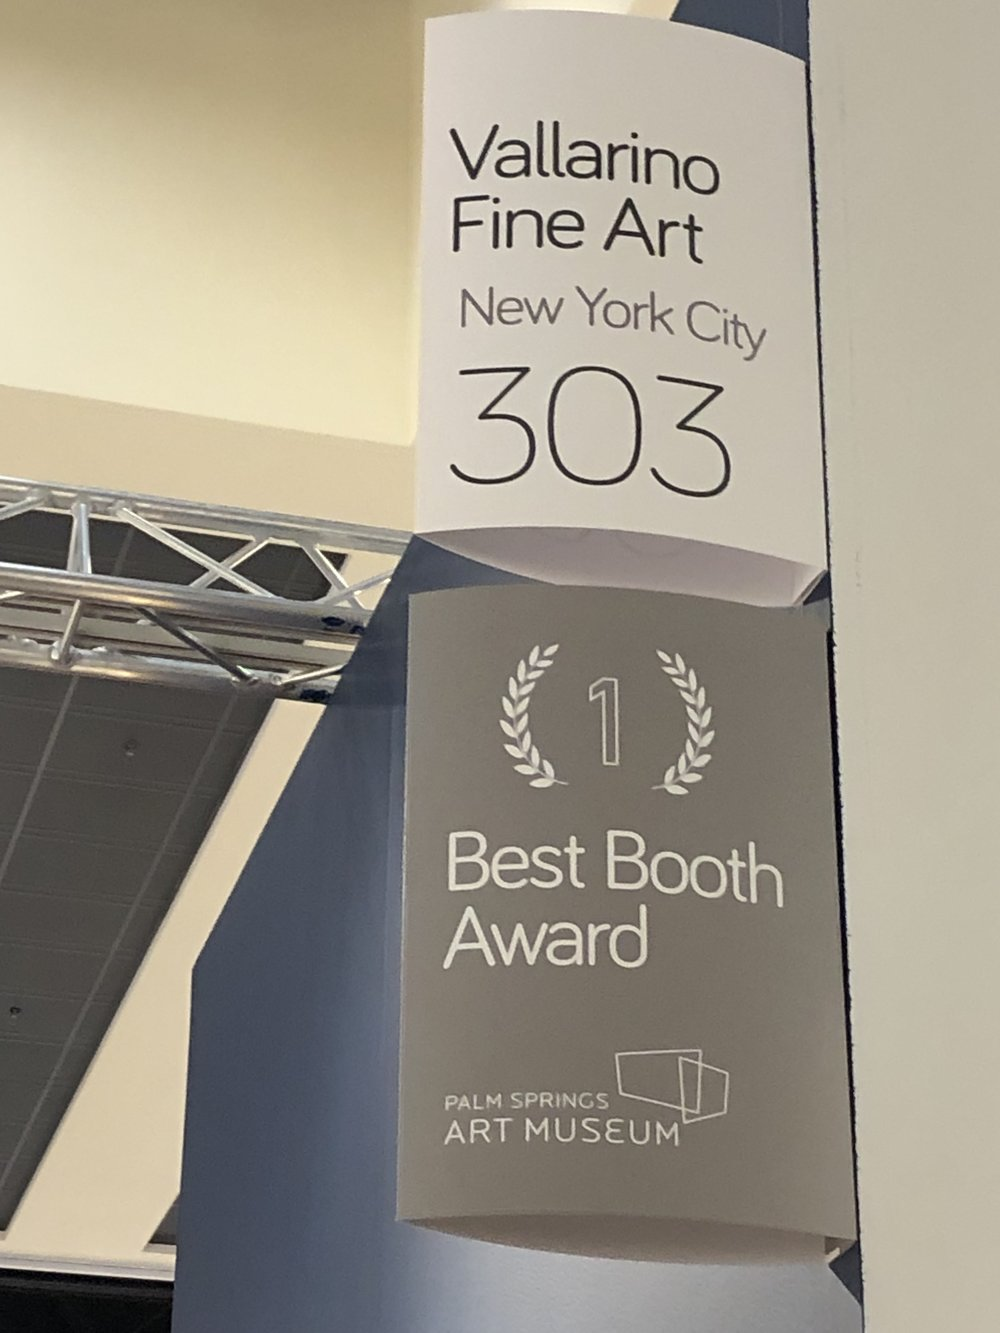 2019 Best Booth Award Recipient: Palm Springs Art Museum